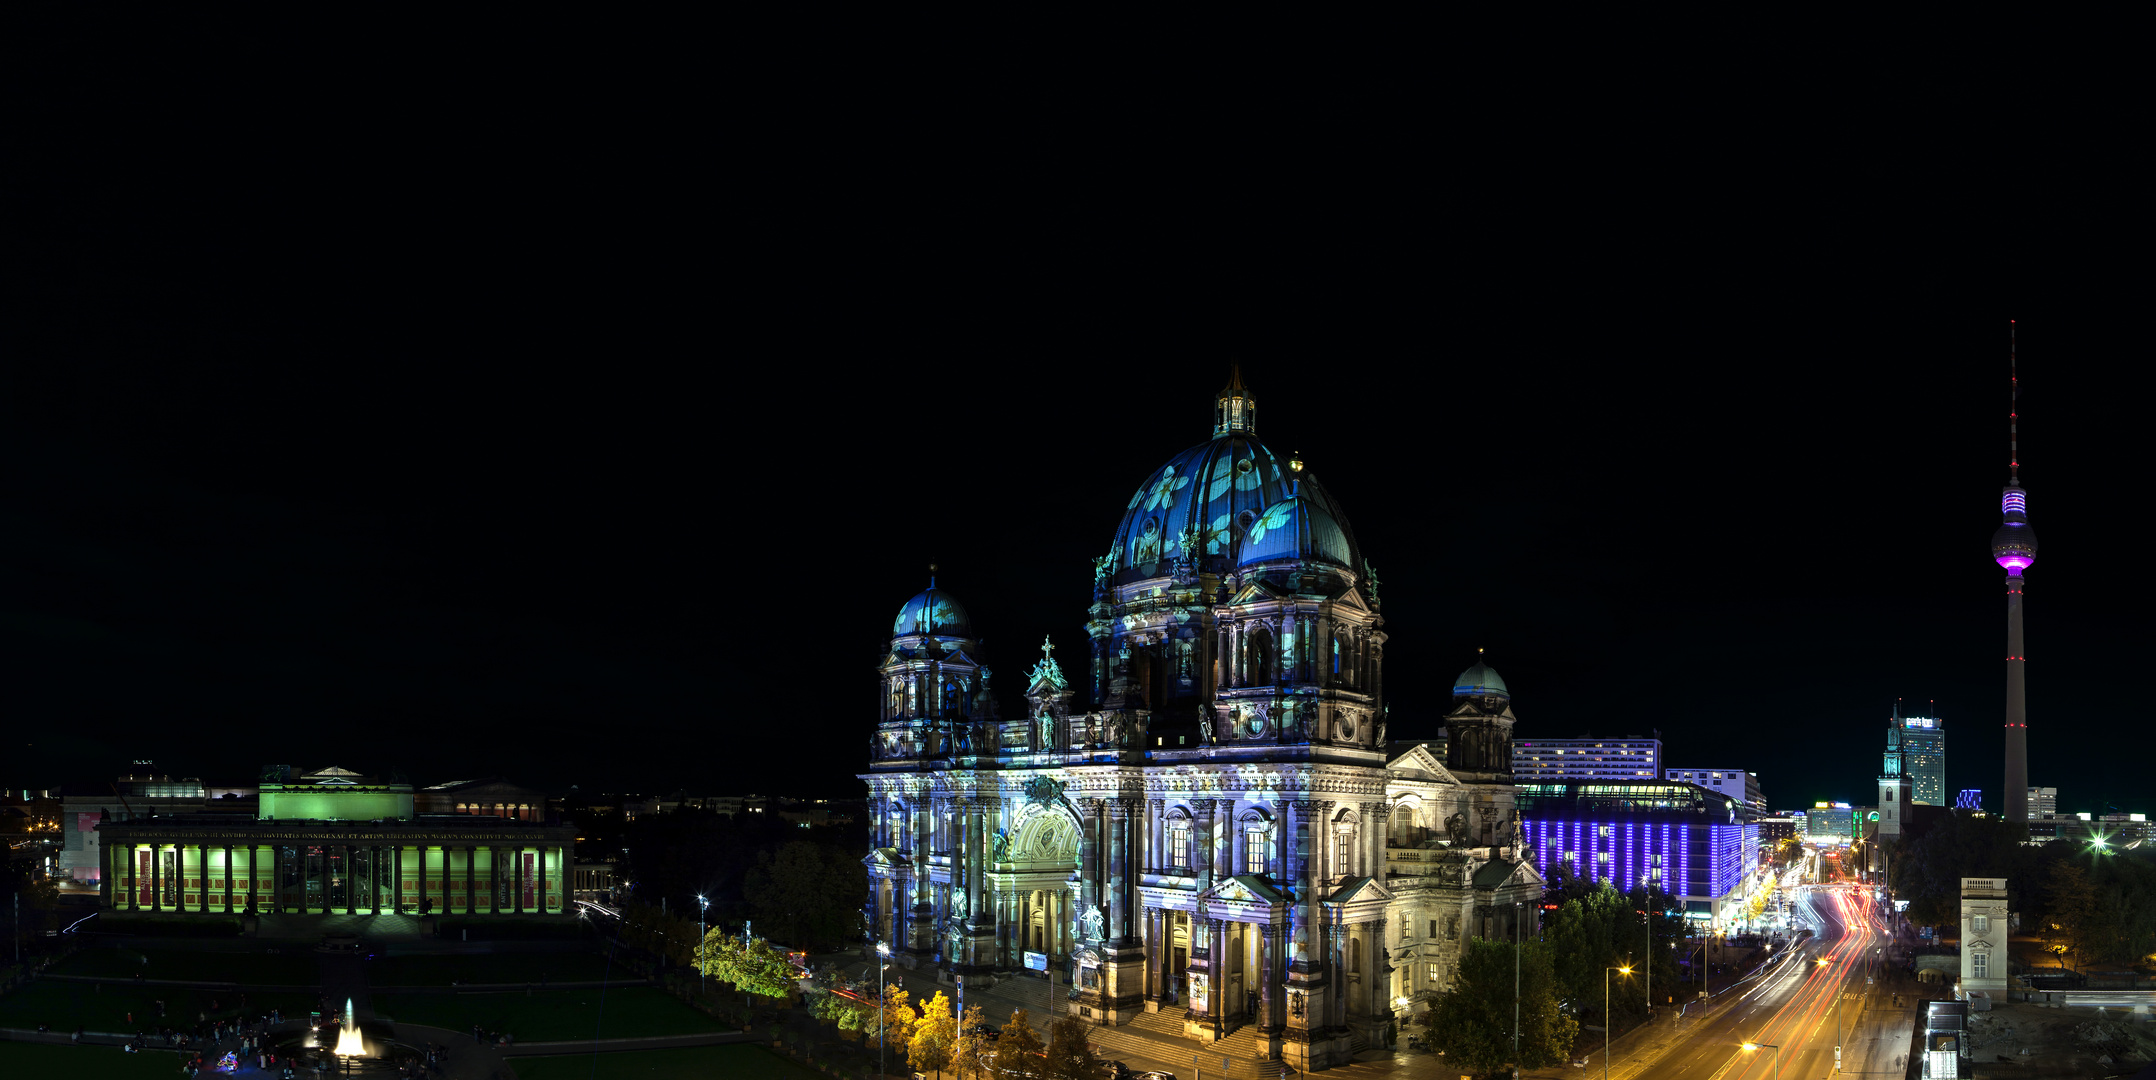 Festival of Lights/ Berliner Dom